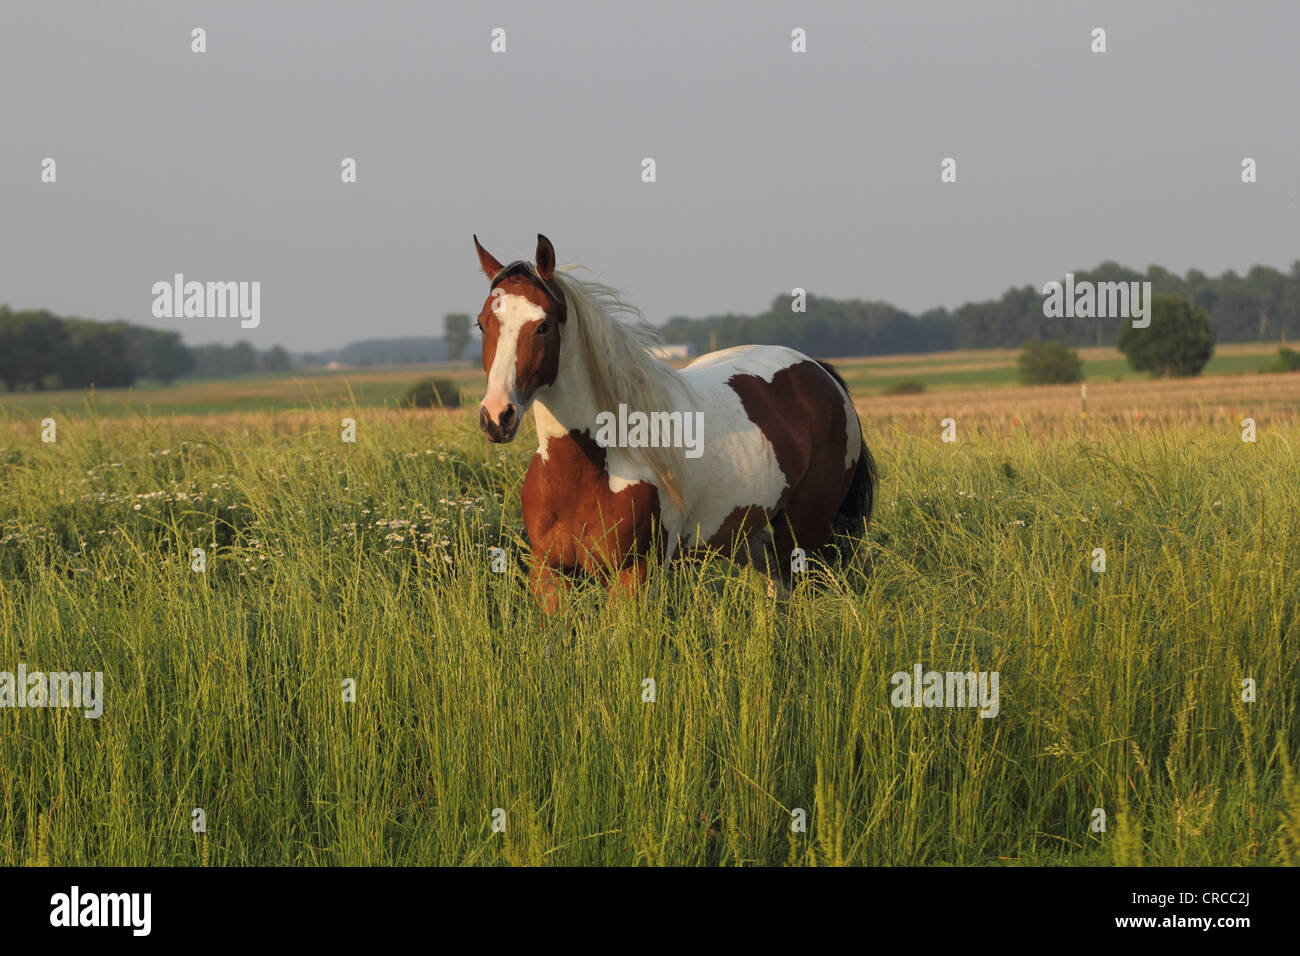 Bay Tobiano Paint horse in a field with long grass - Stock Image